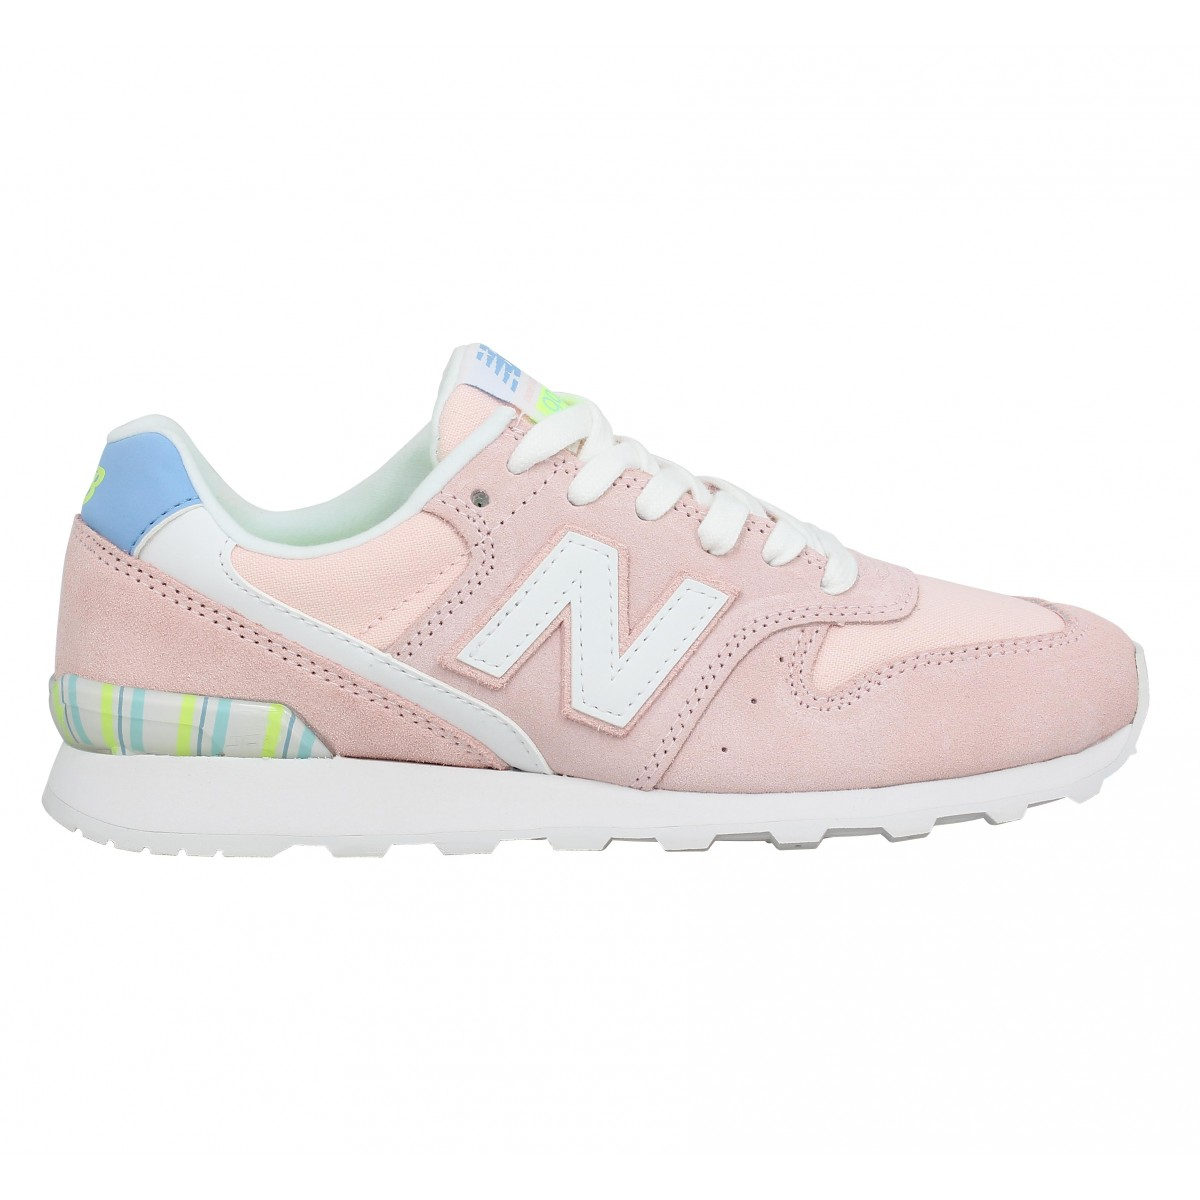 cd566fab47cf6 Balance Roses Femme New Femme Roses New New Balance Y454qSw